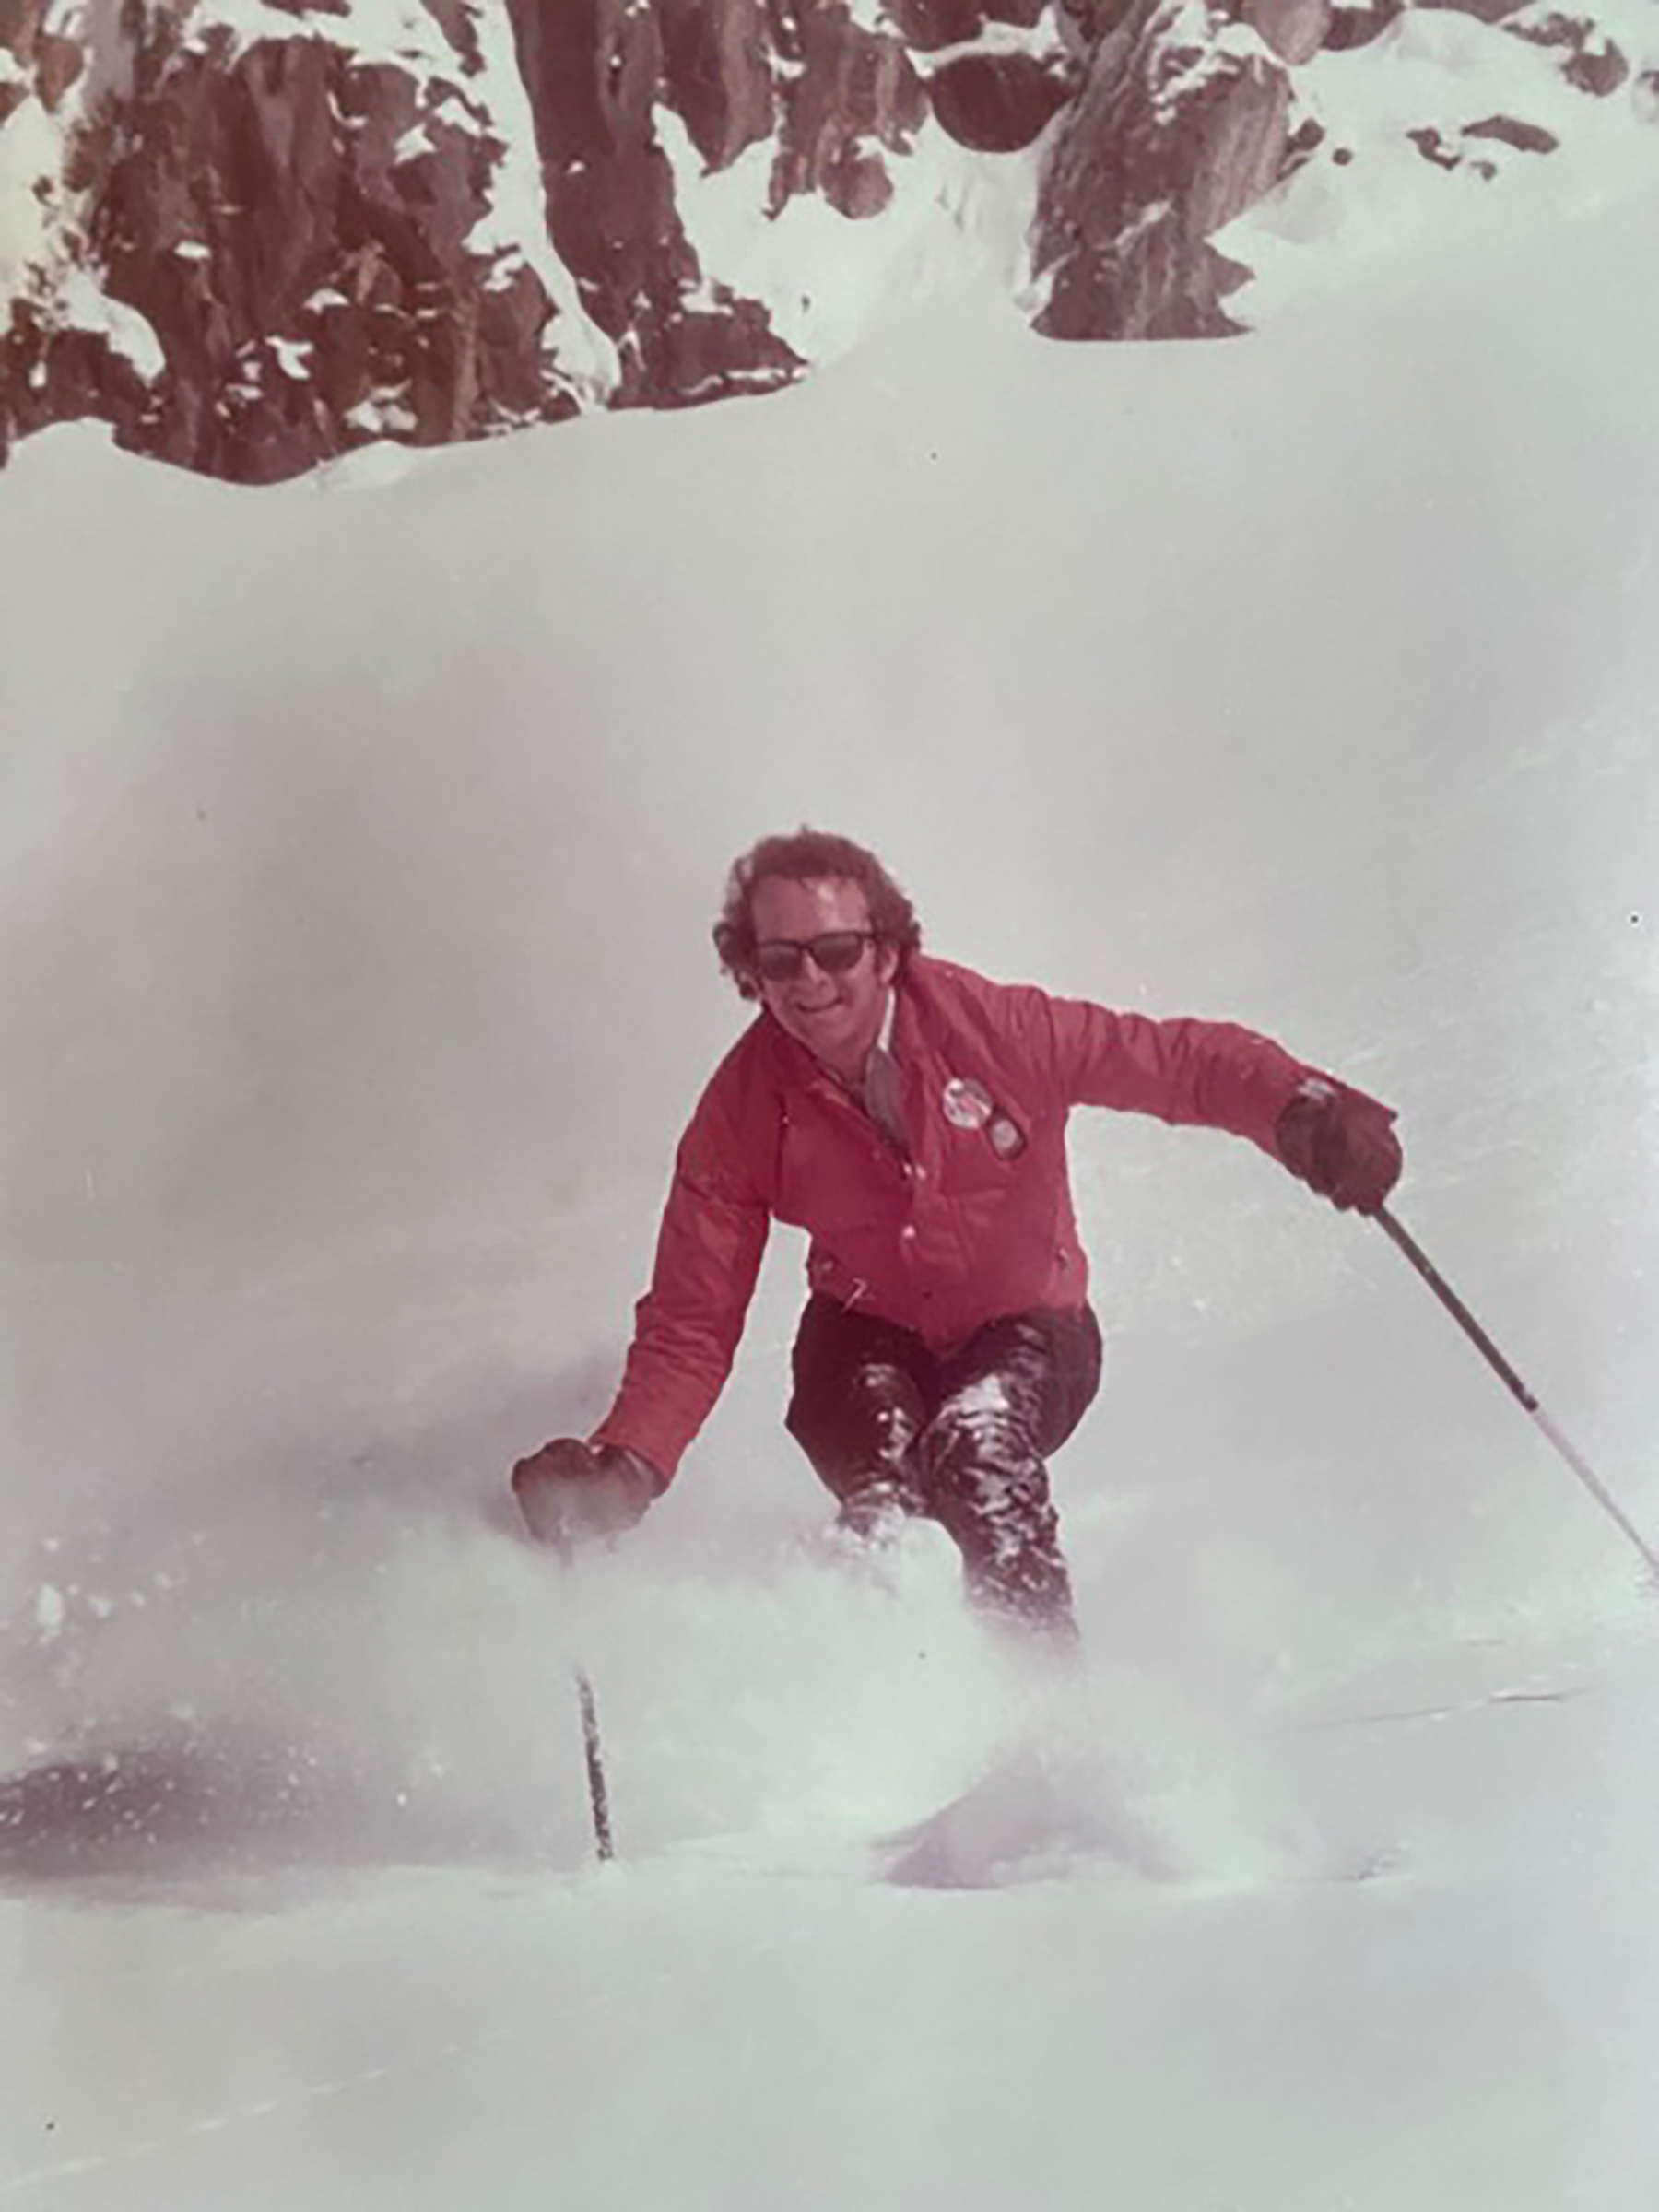 Gow skiing in the 70s